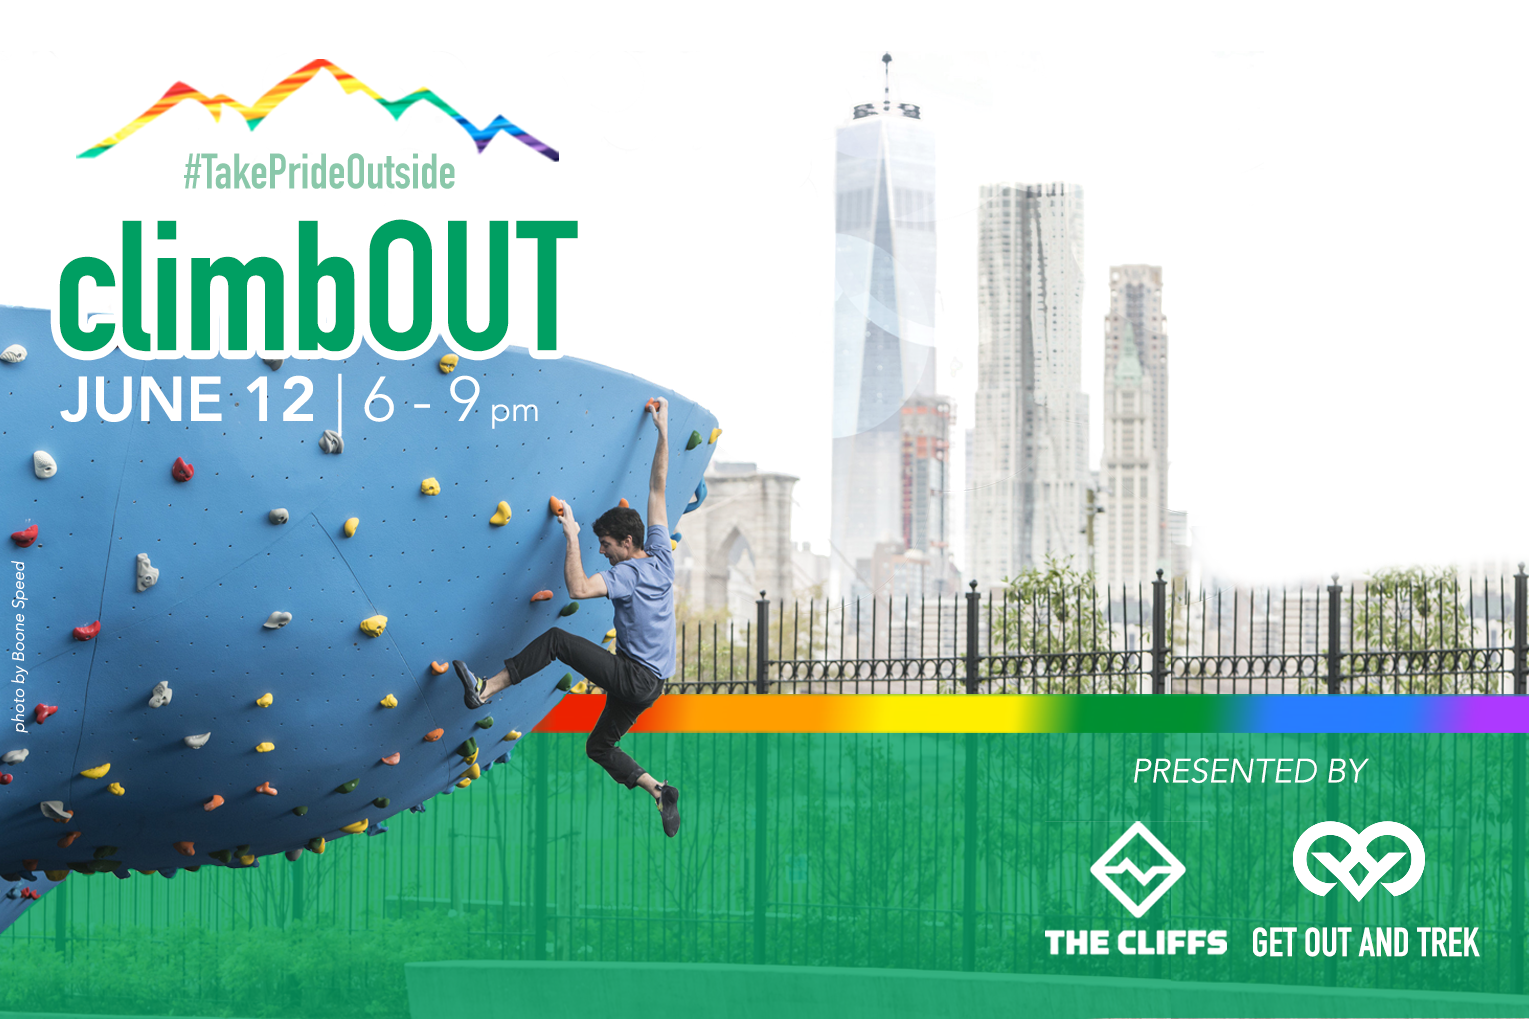 Jun 12climbOUT - Celebrate pride and learn to climb with views of the city skyline in DuMBO. All skills welcome.